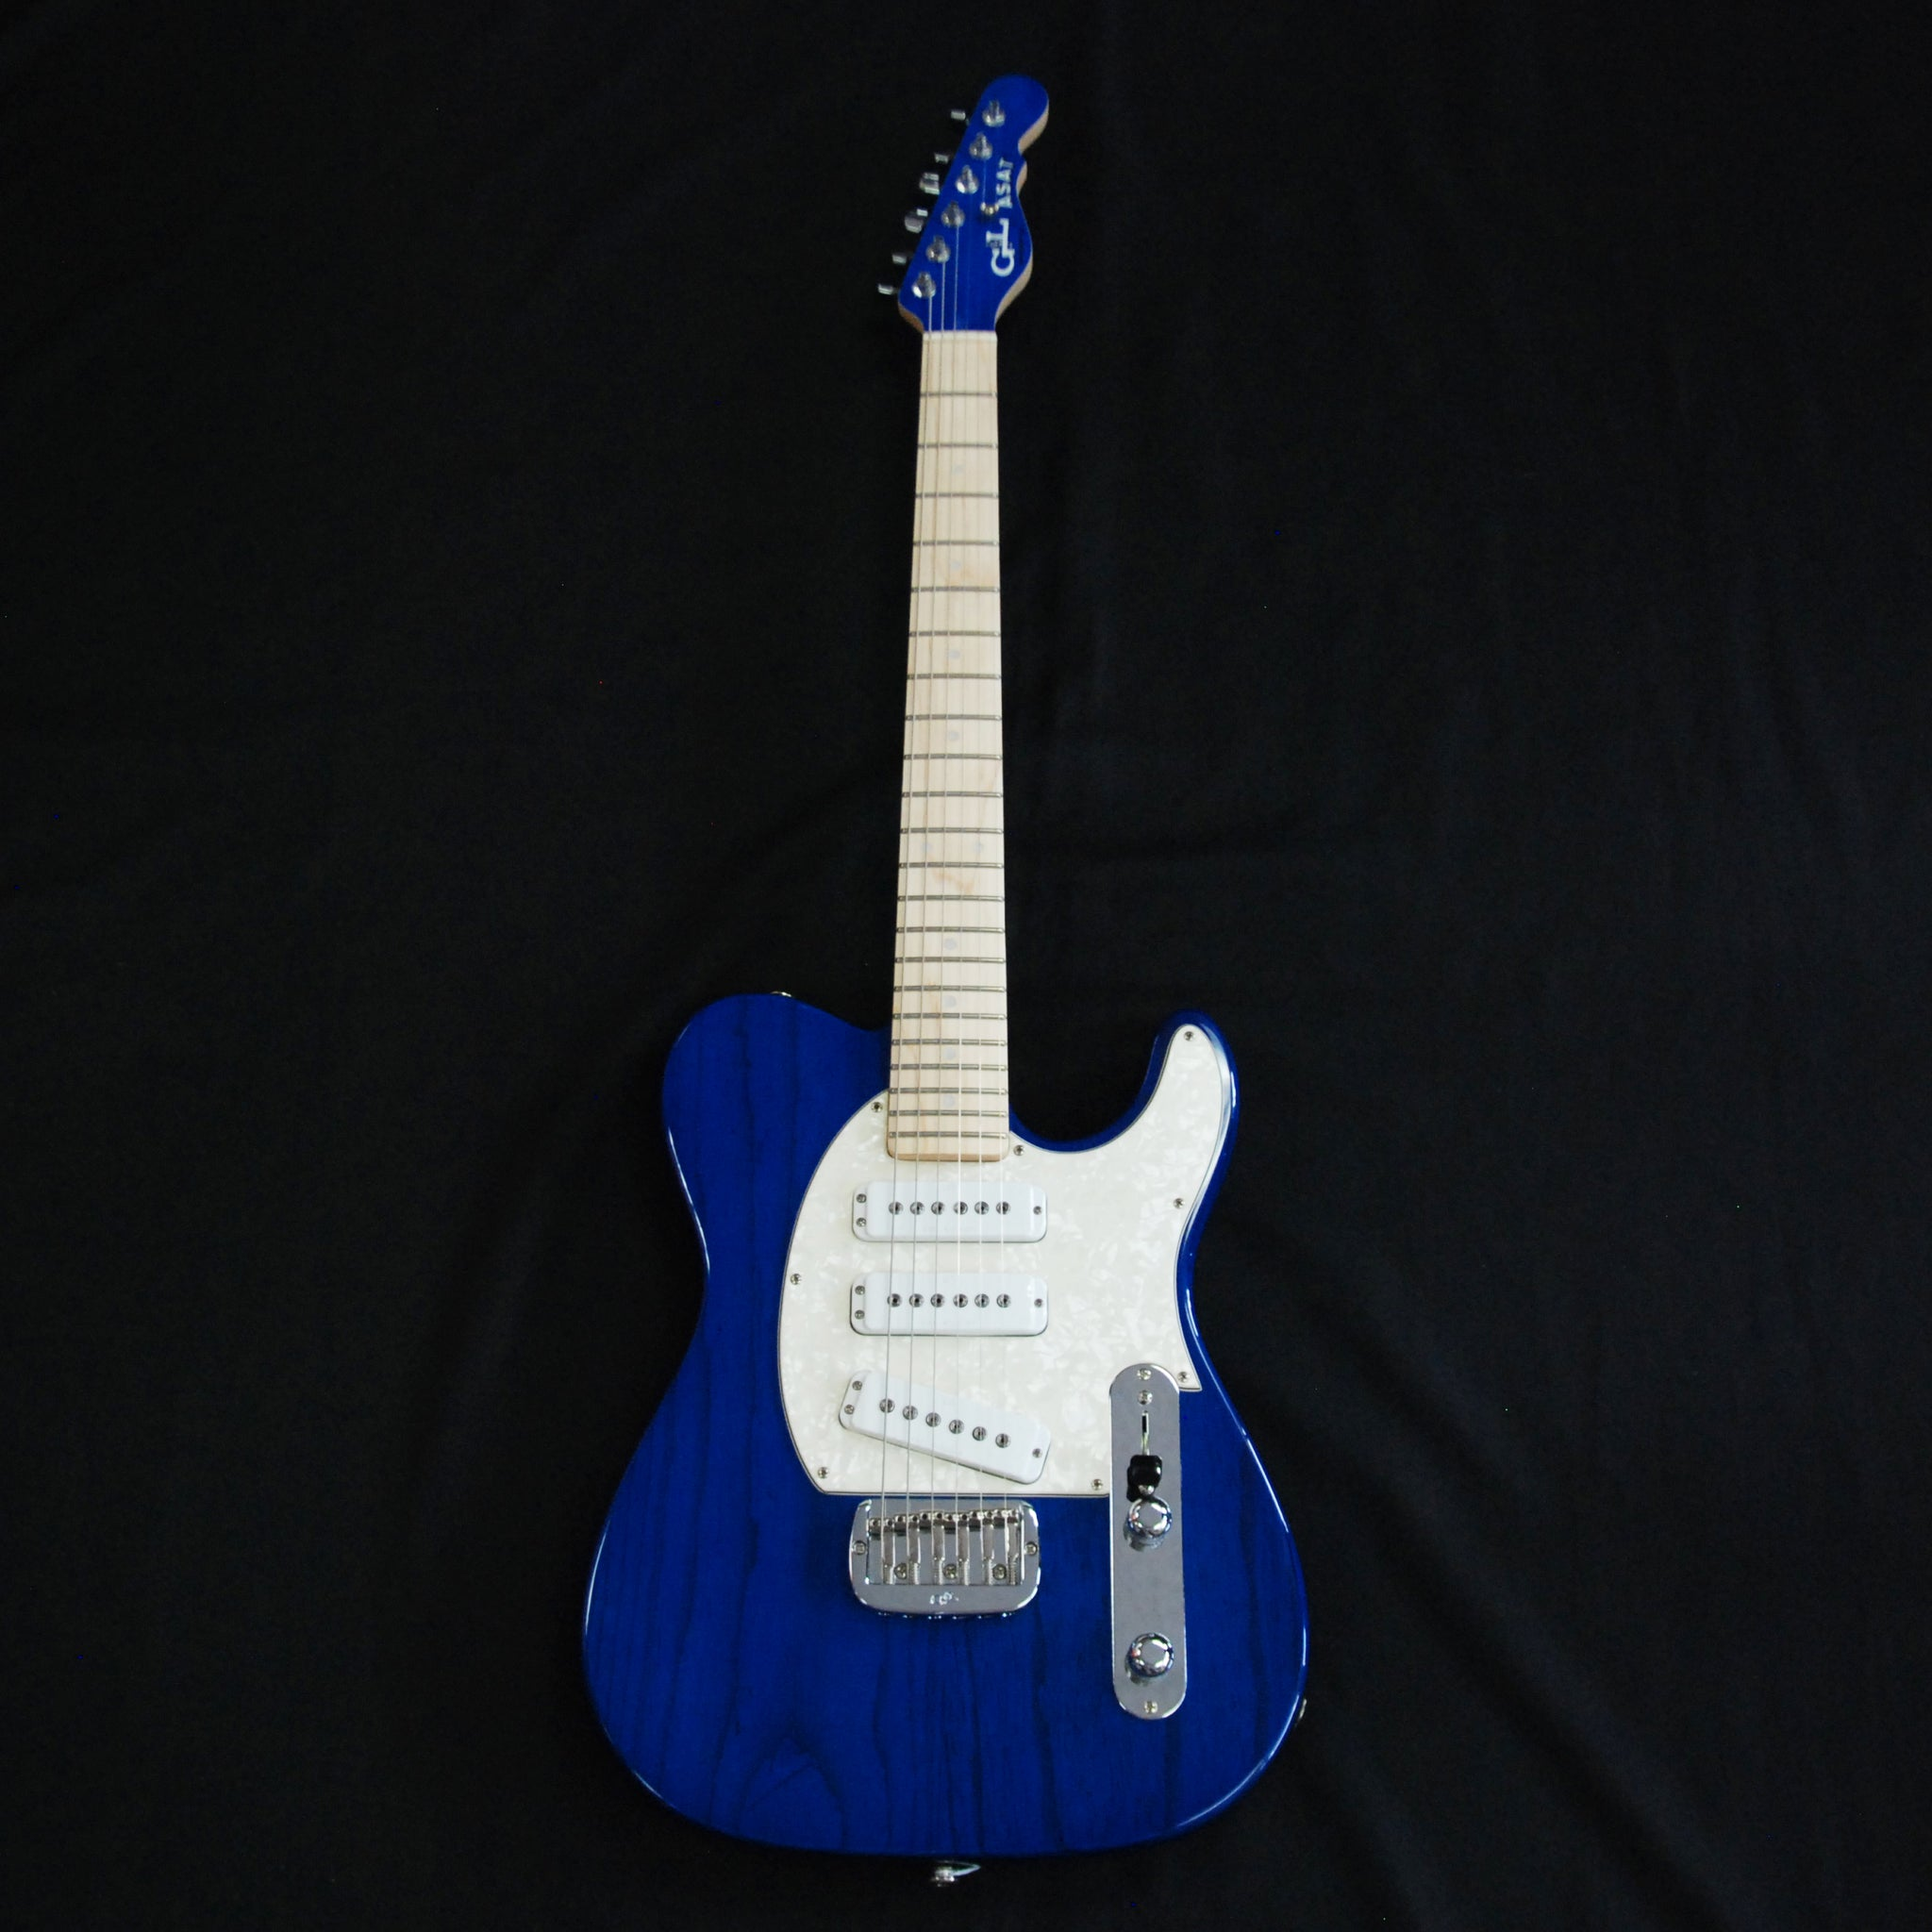 Shop online for G&L ASAT Special 3 Limited Edition USA Electric Guitar Clear Blue 69815 today.  Now available for purchase from Midlothian Music of Orland Park, Illinois, USA